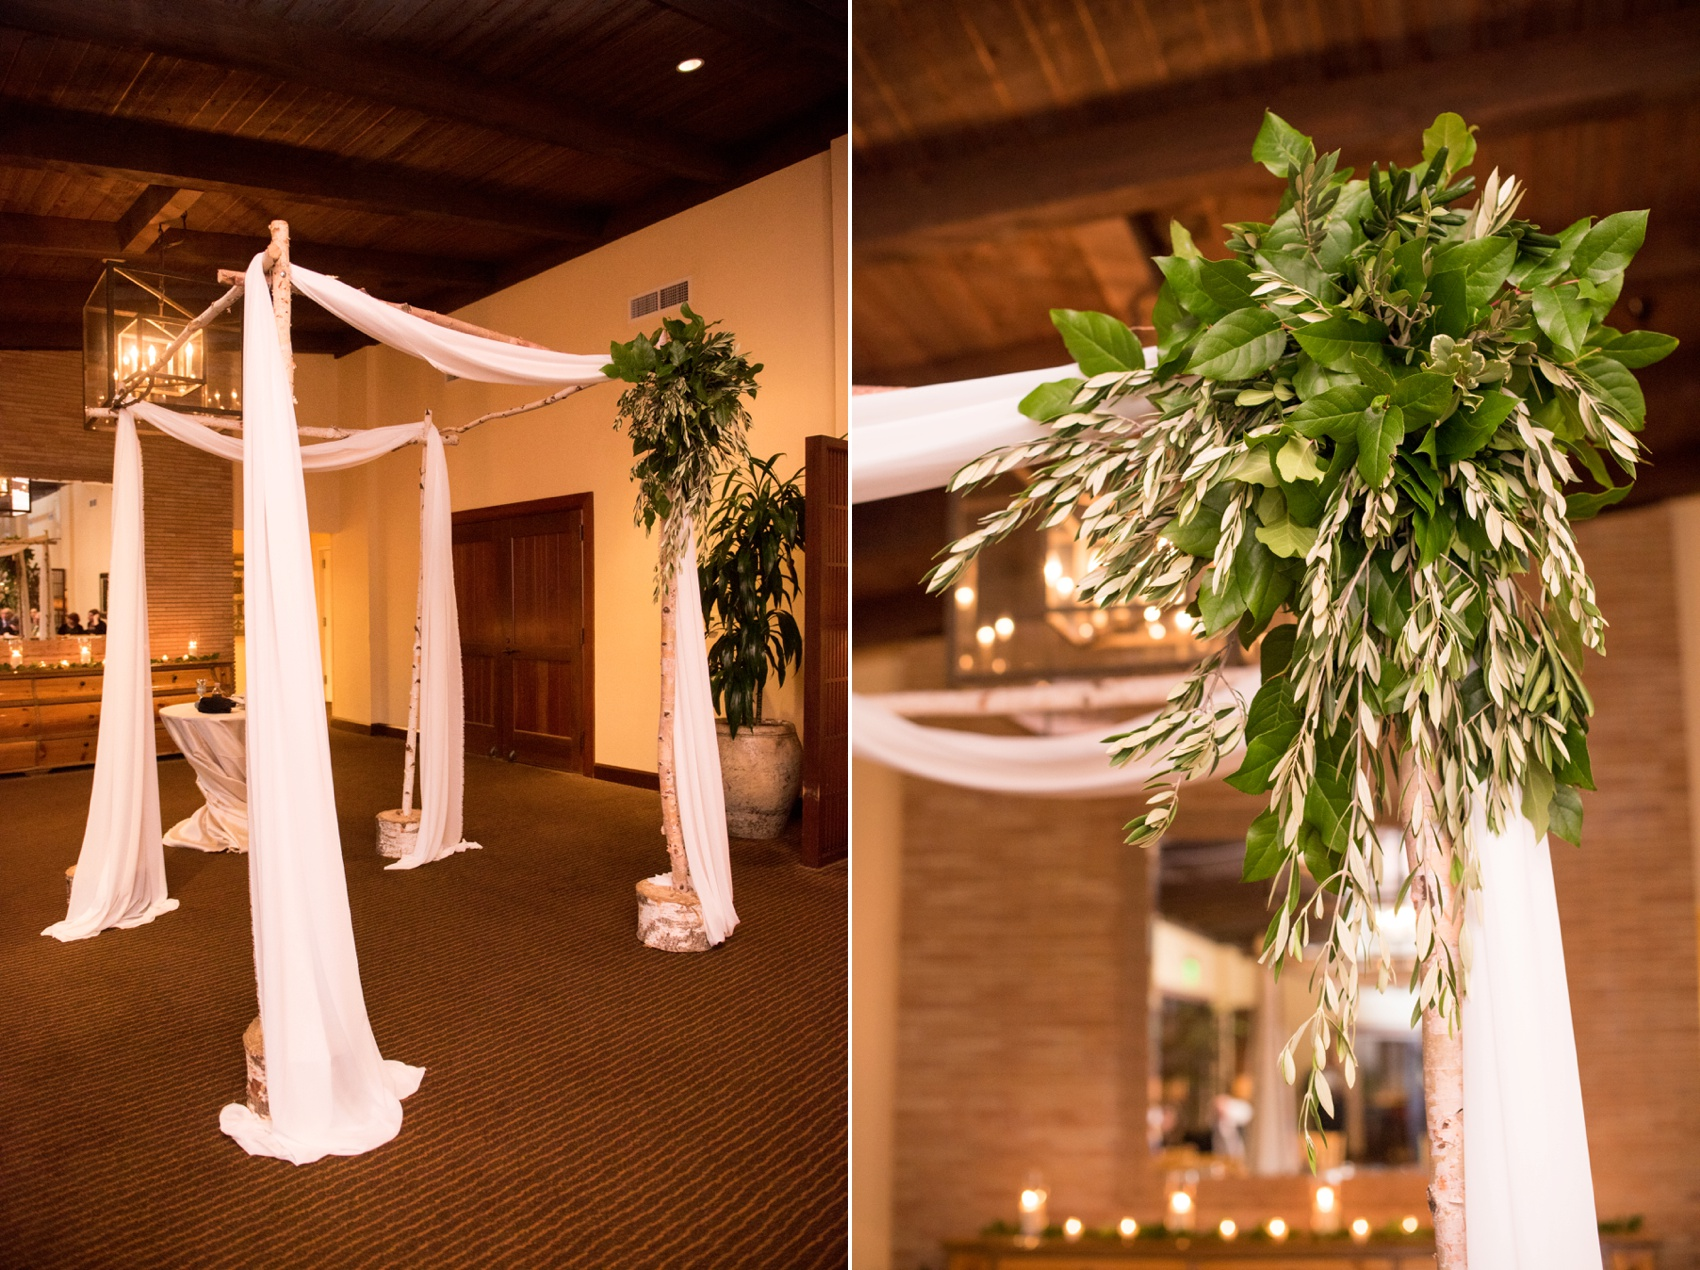 Estancia La Jolla wedding photography by Mikkel Paige Photography. Tropical wedding, California coast. Indoor chuppah for small Jewish ceremony.